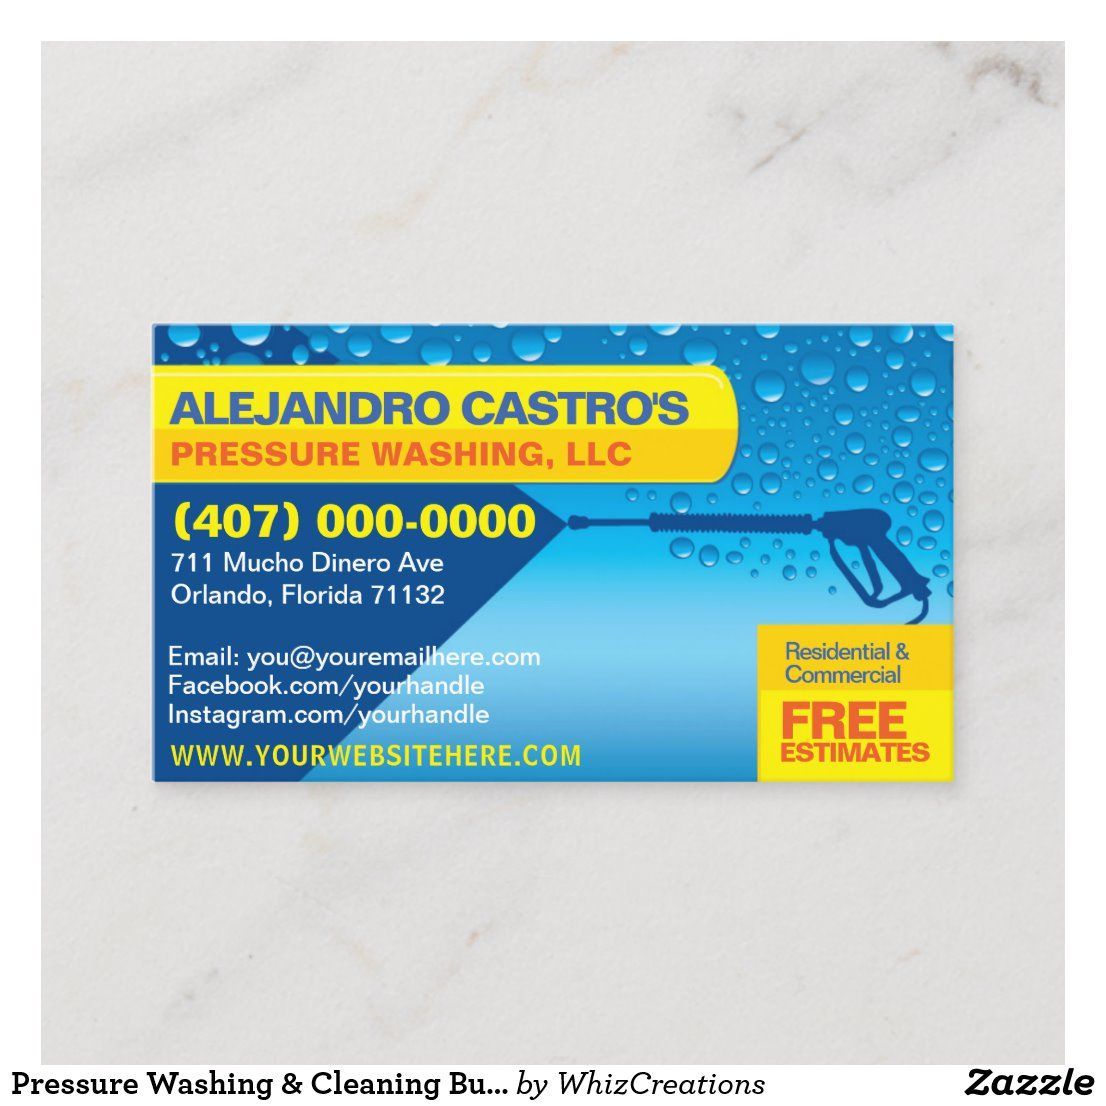 Pressure Washing Cleaning Business Card Template Zazzle Com In 2020 Cleaning Business Cards Pressure Washing Business Card Template